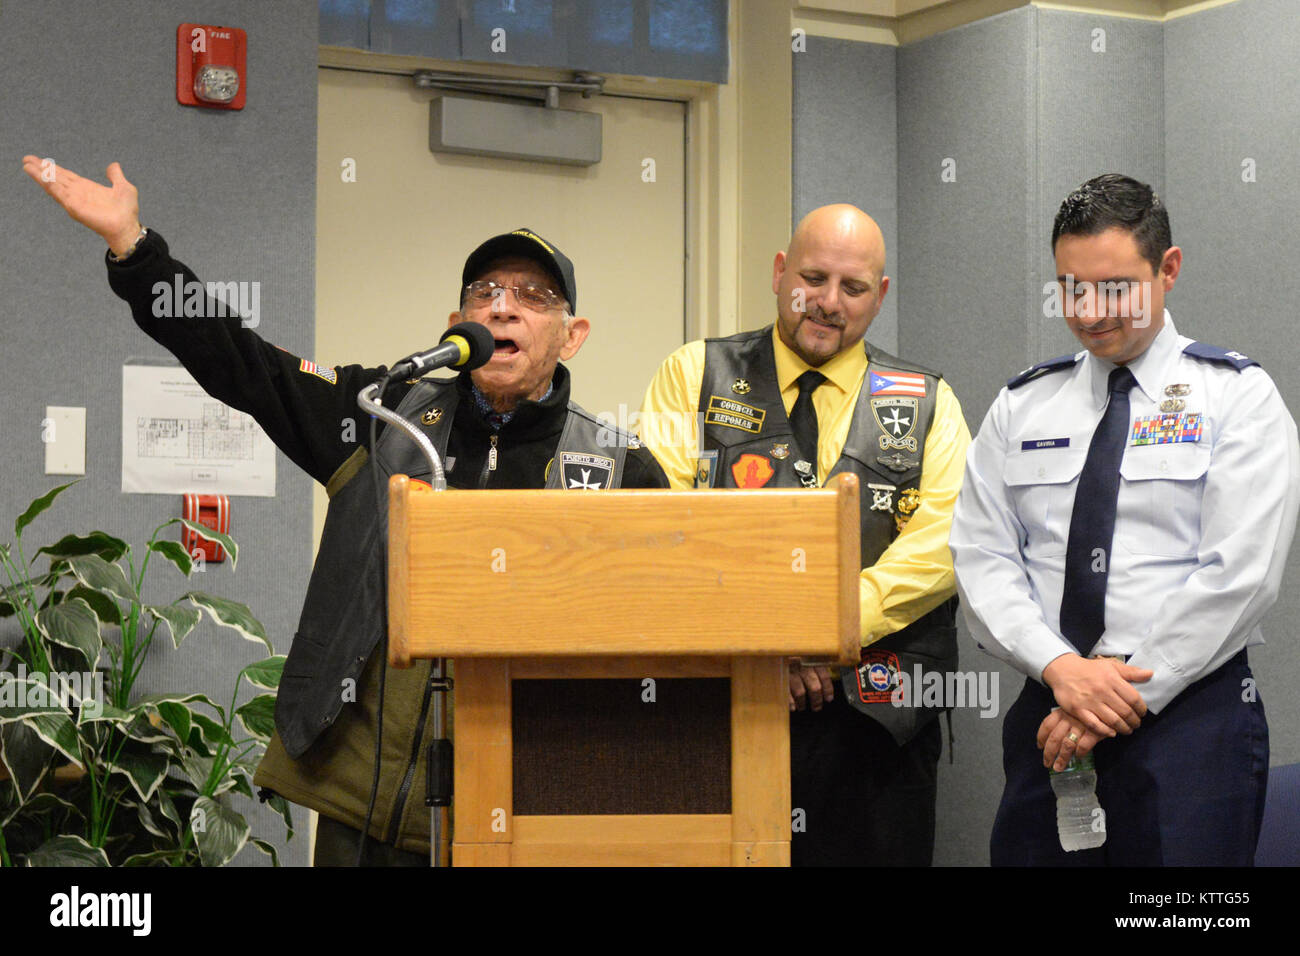 Vicente Arroyo A Retired US Army 65th Infantry Regiment Member Sings At The Podium During Hispanic Heritage Month Celebration New York Air National